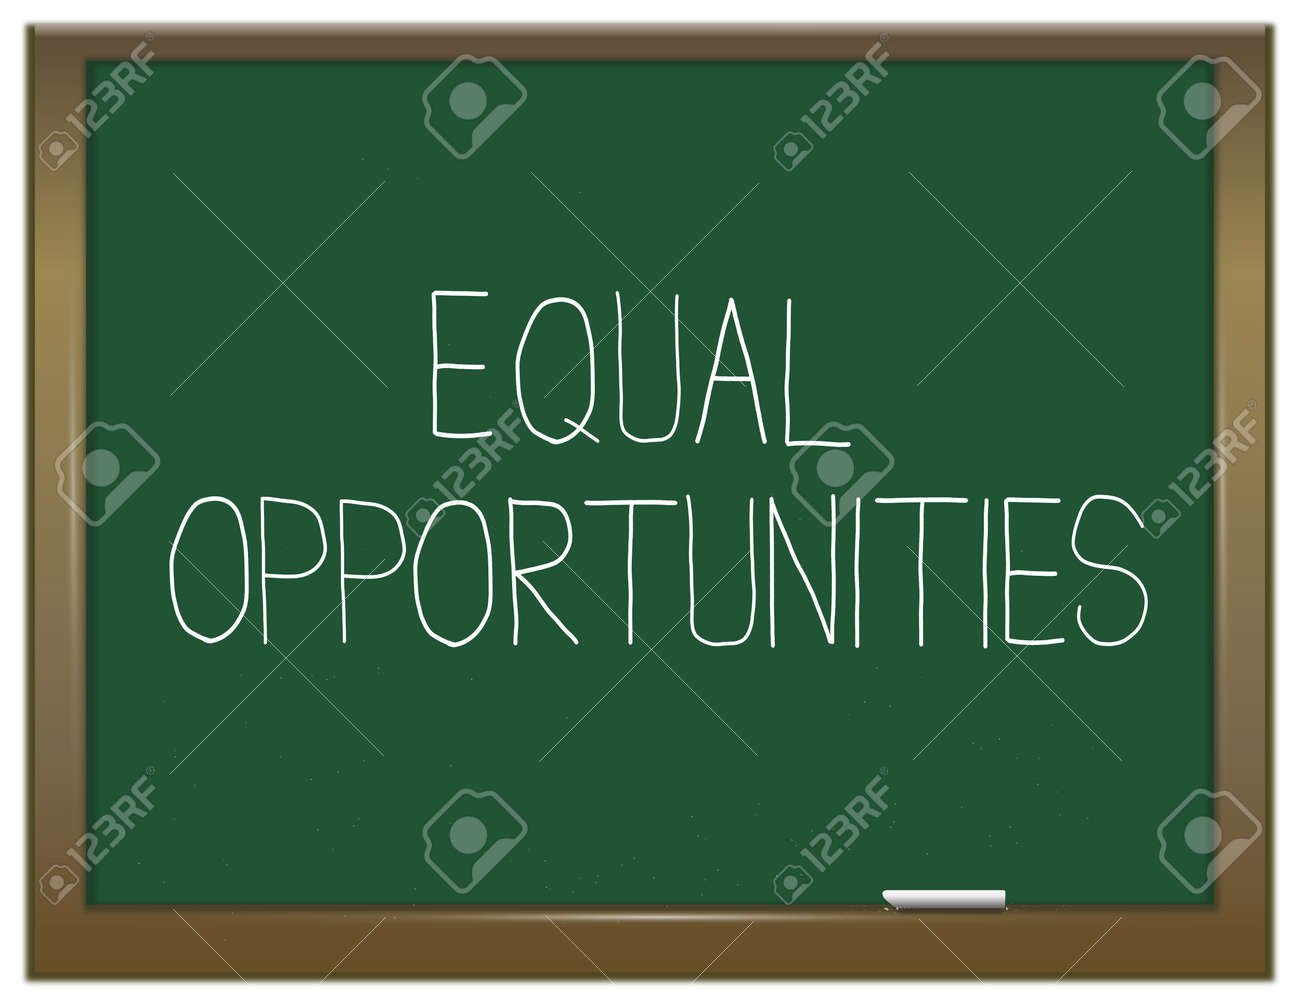 Illustration depicting a green chalkboard with an equal opportunities concept written on it Stock Photo - 13085504